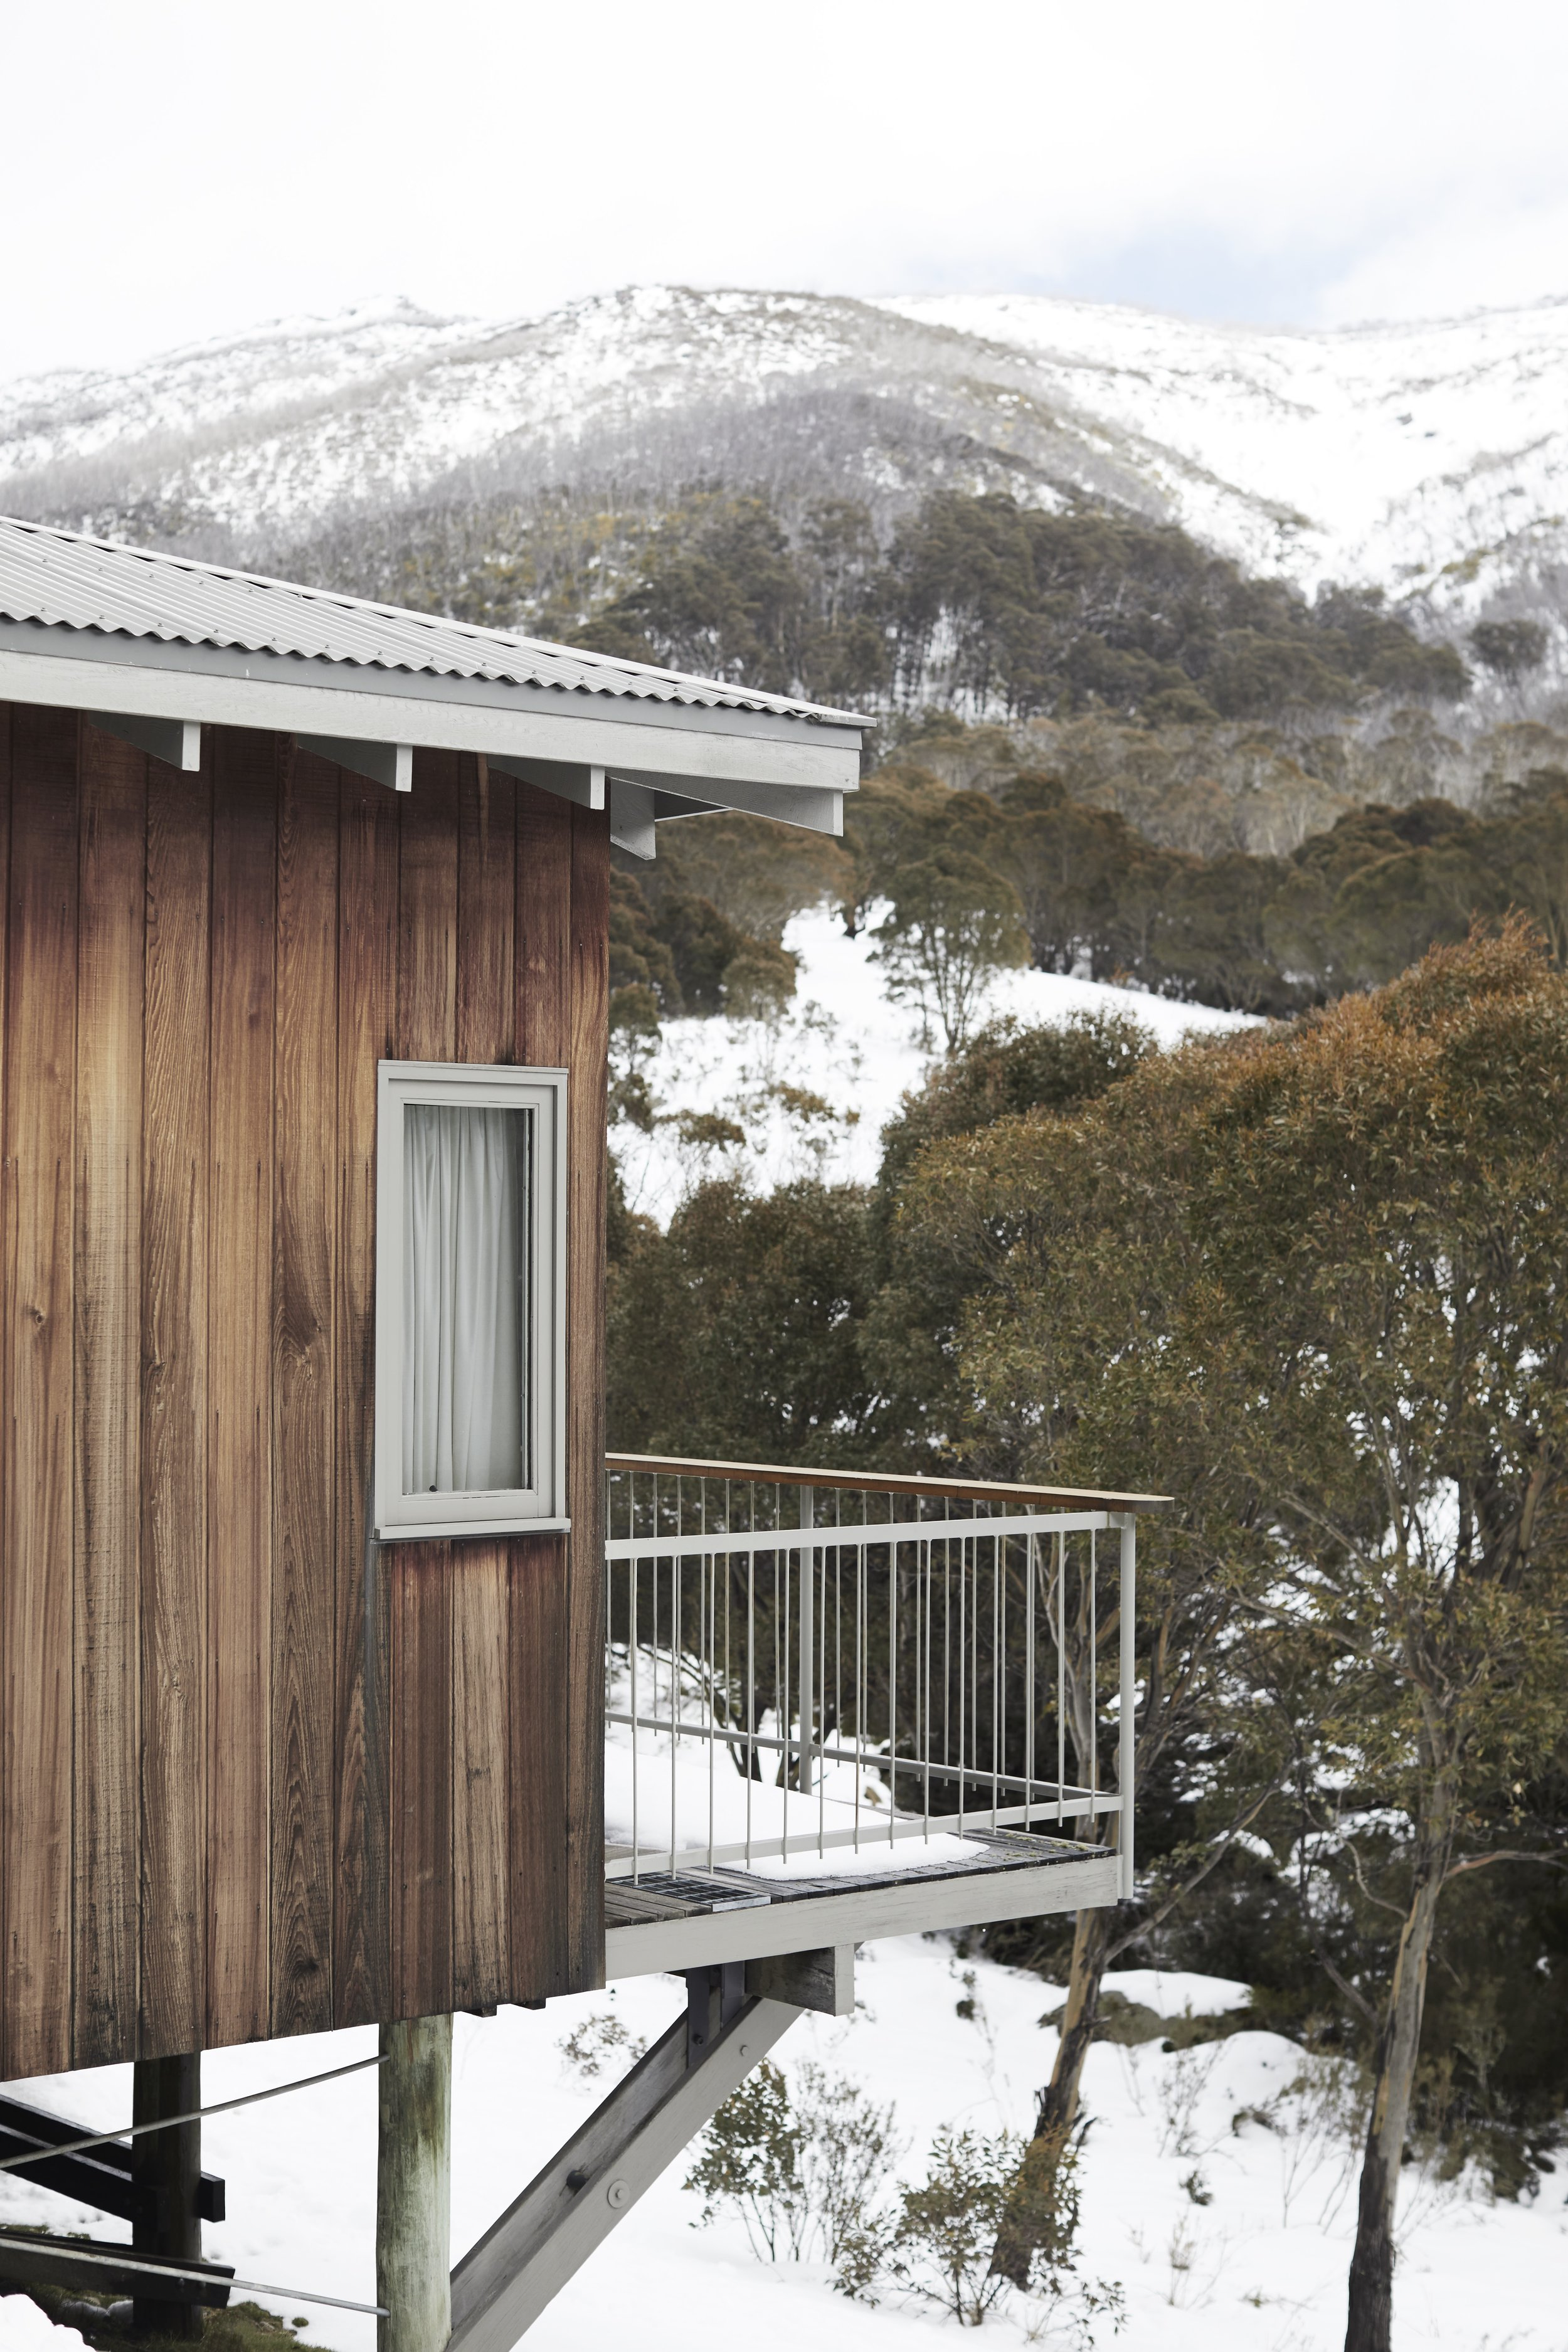 The cabin exterior and magical view out to Mount Kosciuszko at  The Eastern  at Thredbo Village. Photo - Monique Easton.